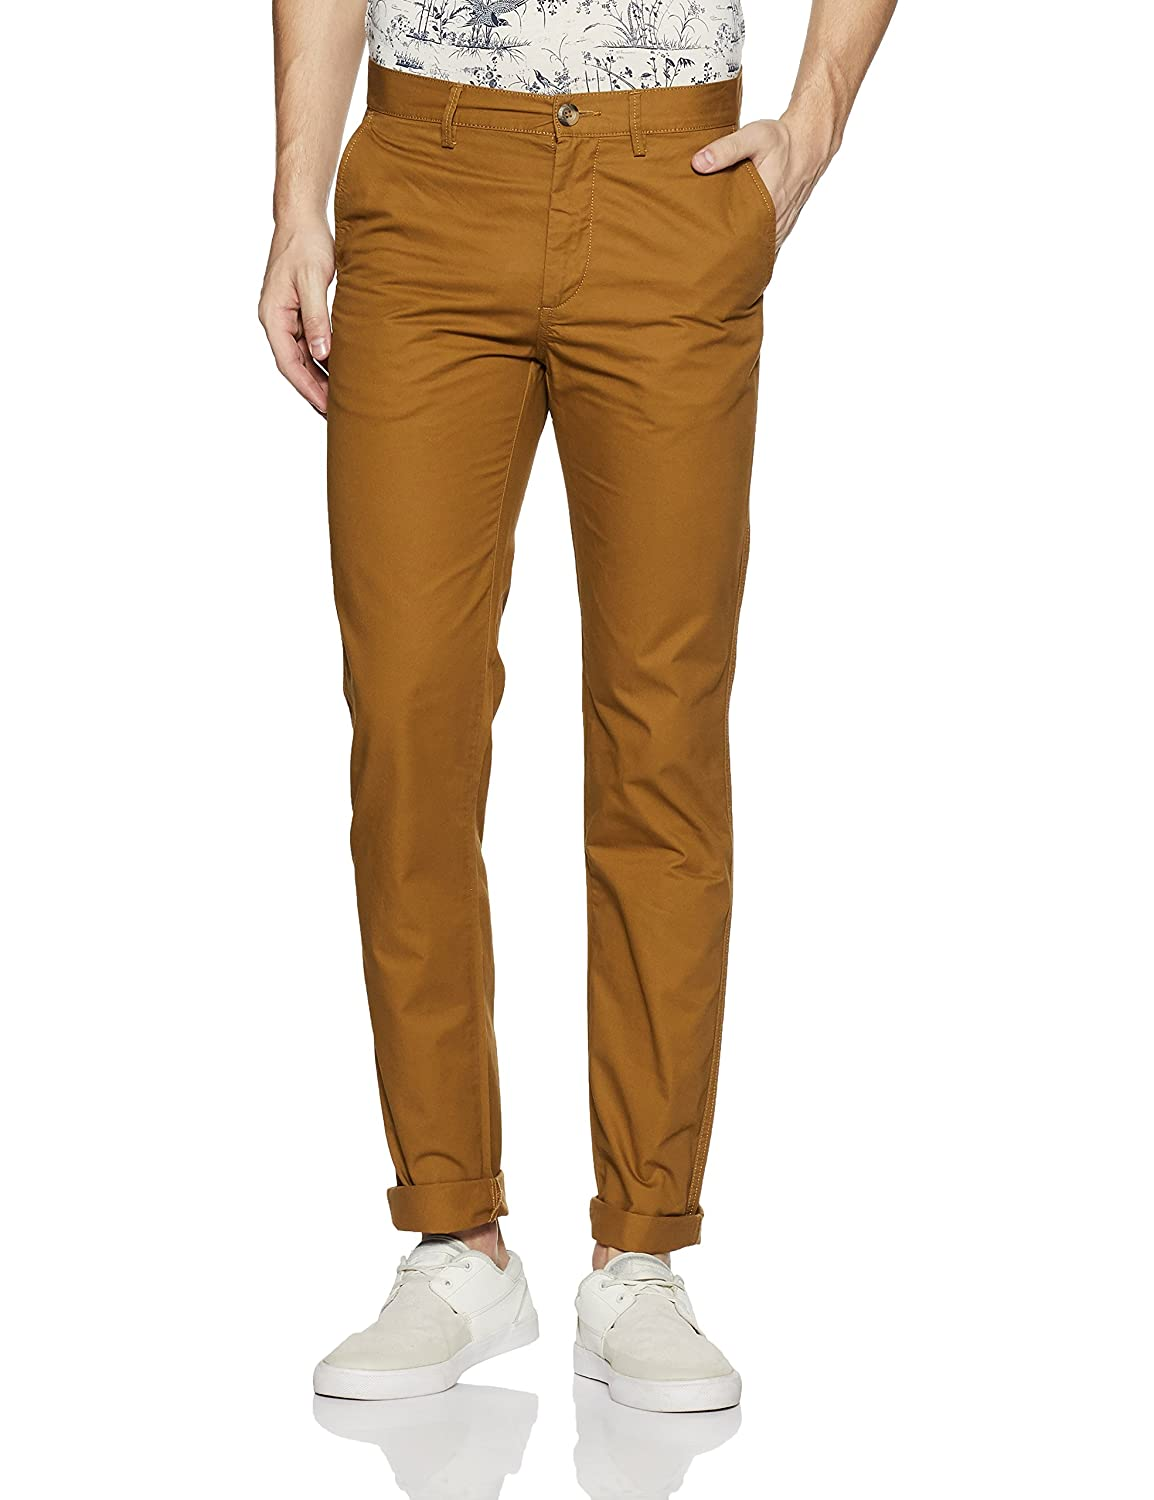 U.S. Polo Assn. Men's Casual Trousers